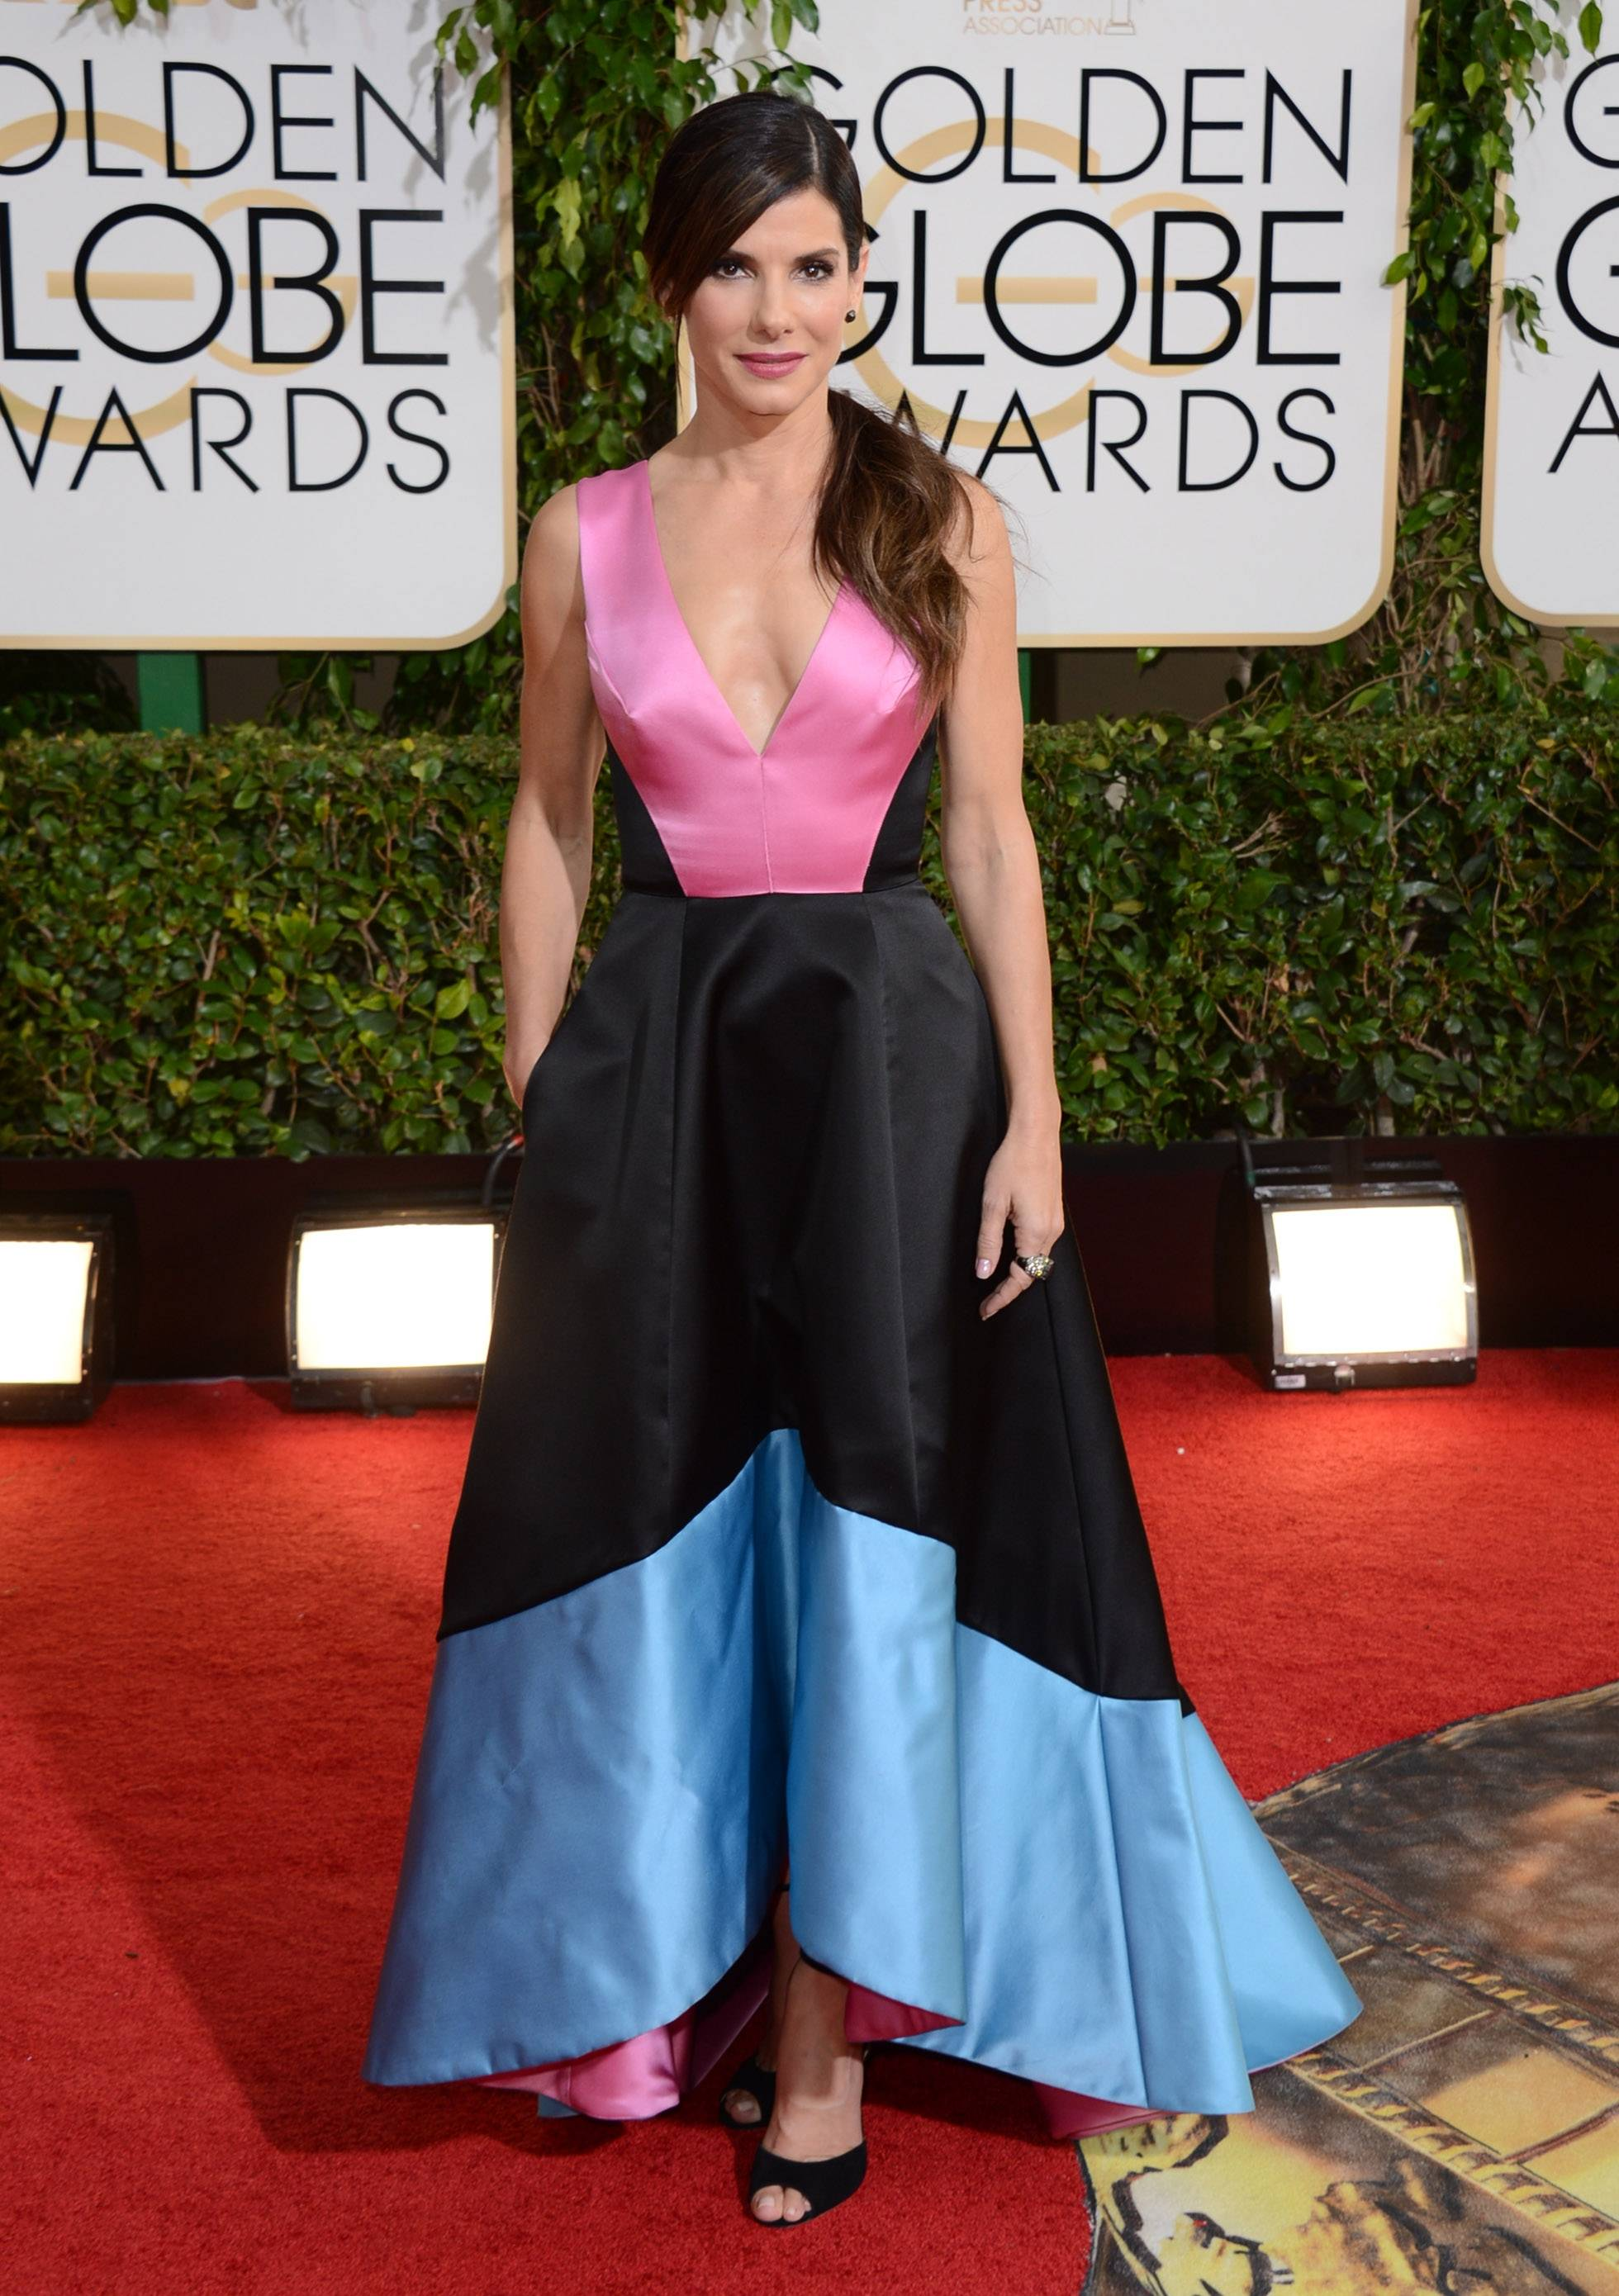 Sandra Bullock is usually a red carpet stunner, but this dress is distracting and not in the way she probably hoped it would be.